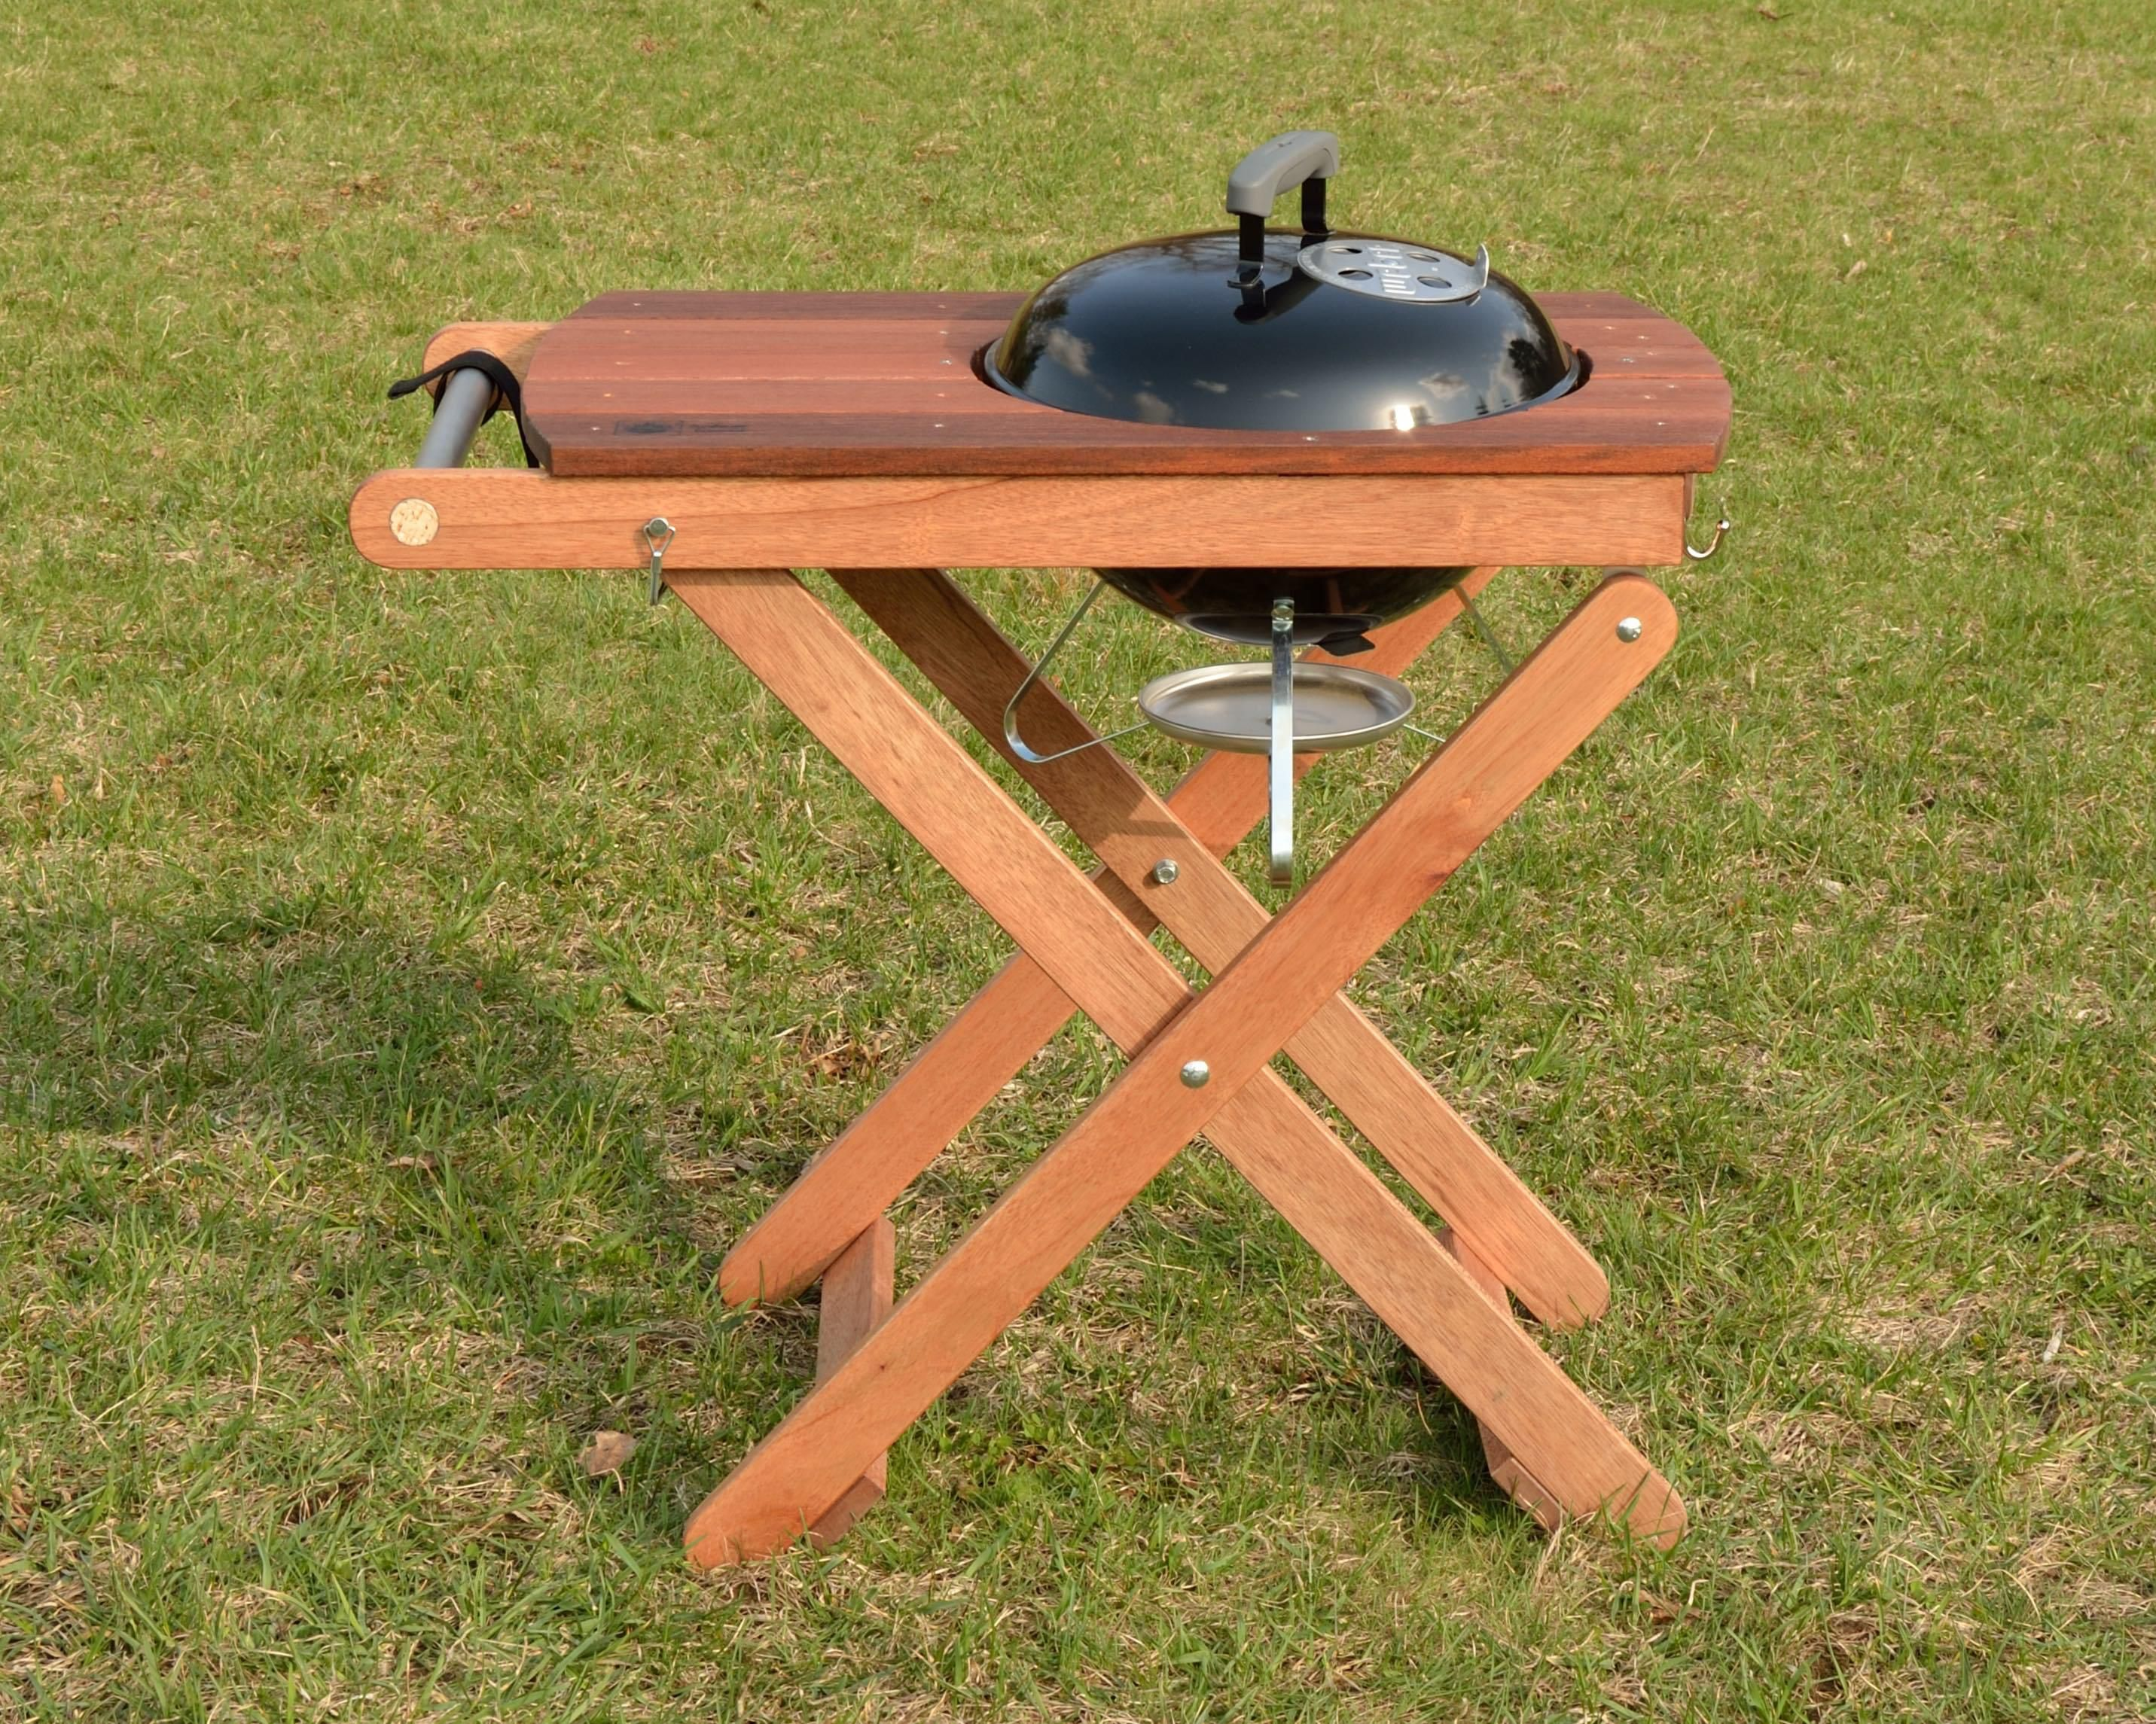 Weber Smokey Joe Table.Get That Weber Smokey Joe Out In The World And Up Off The Ground